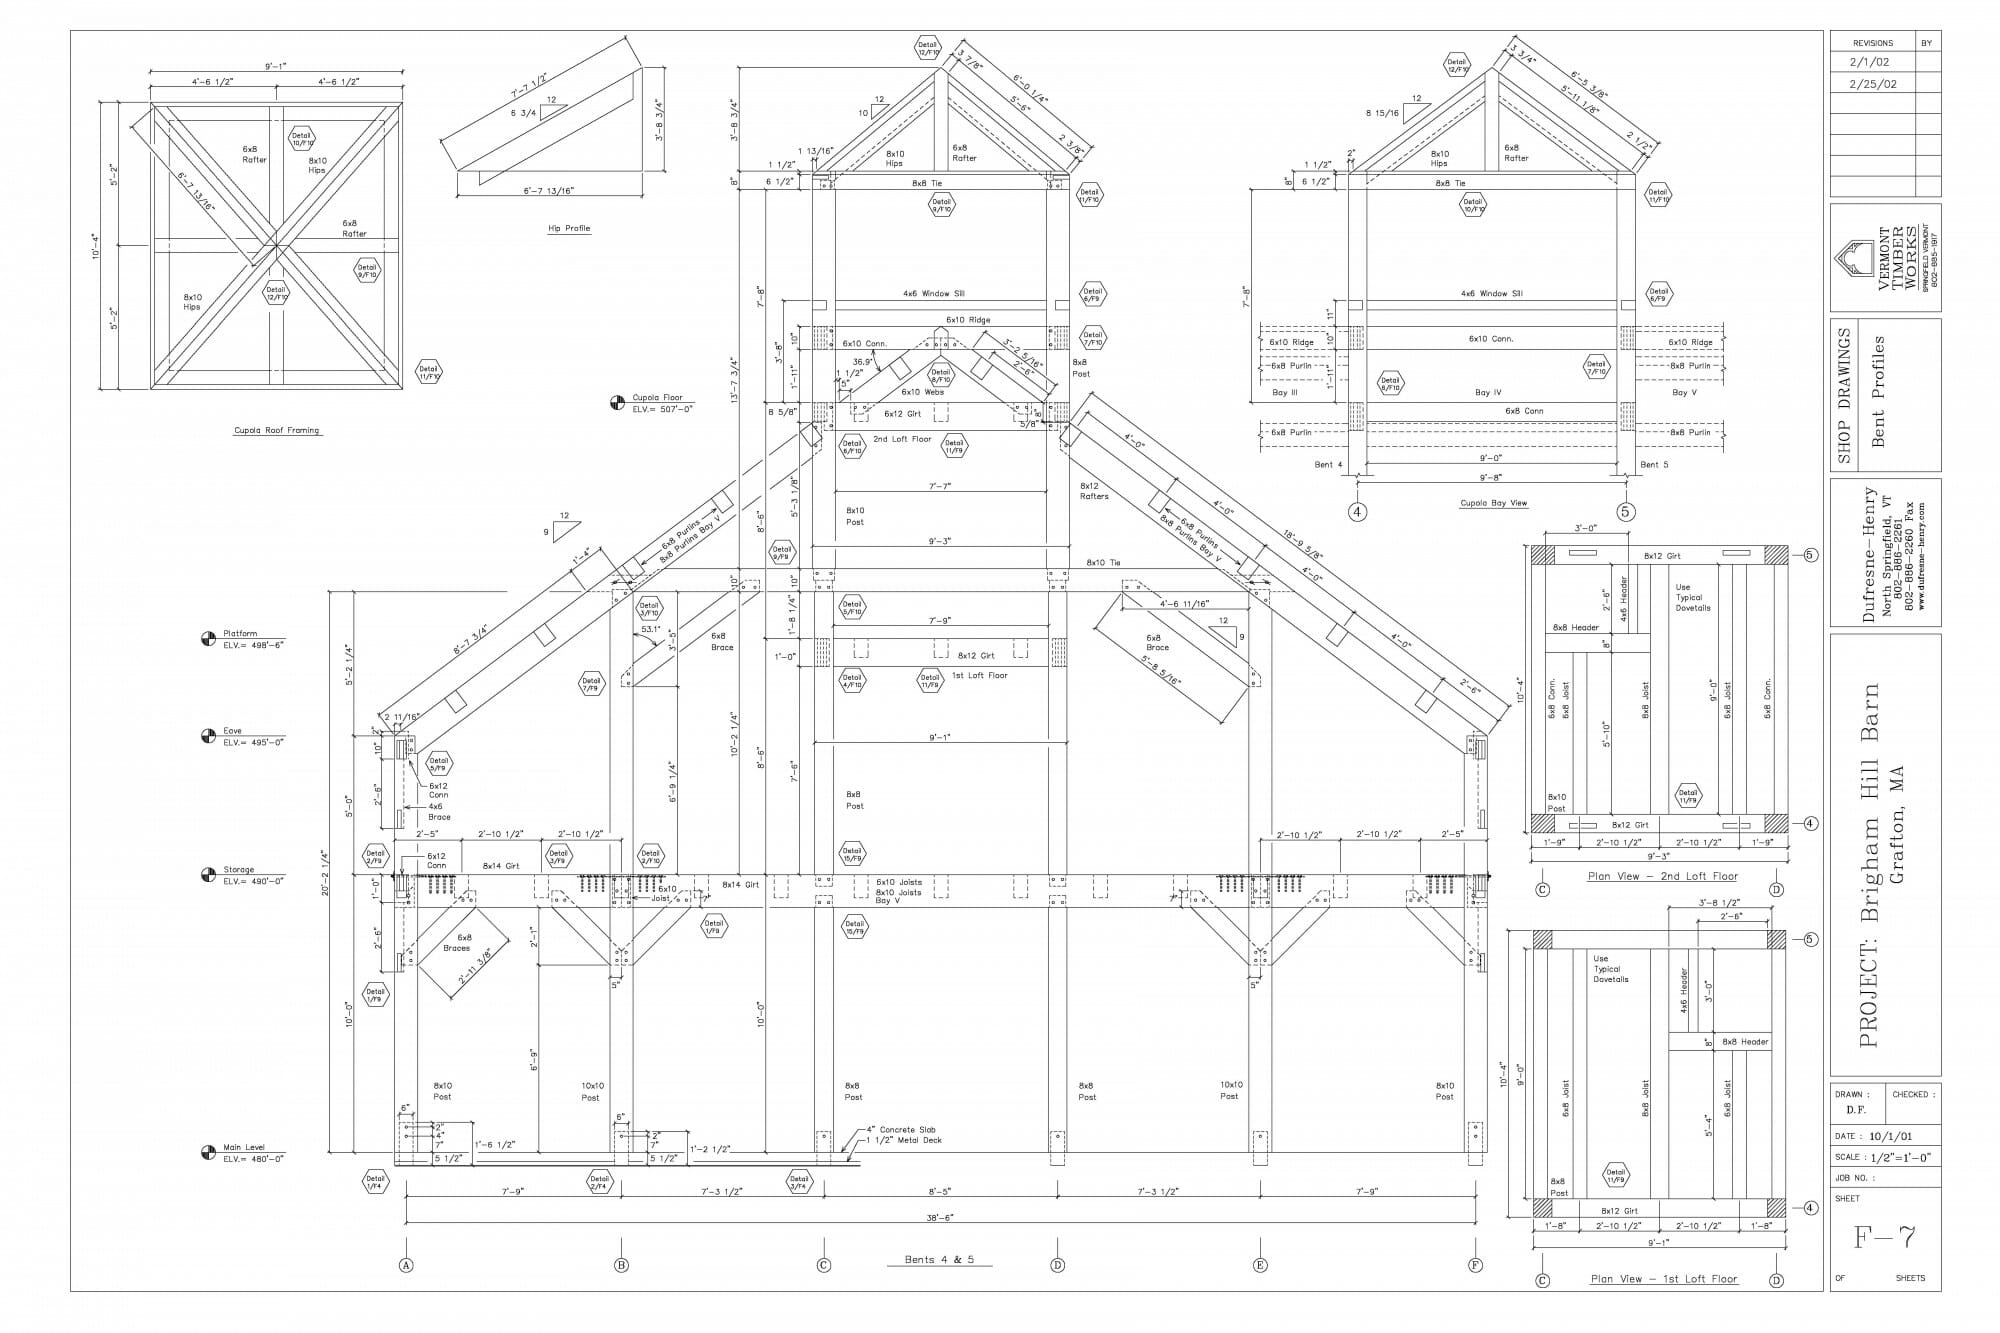 Section view of Bent framing